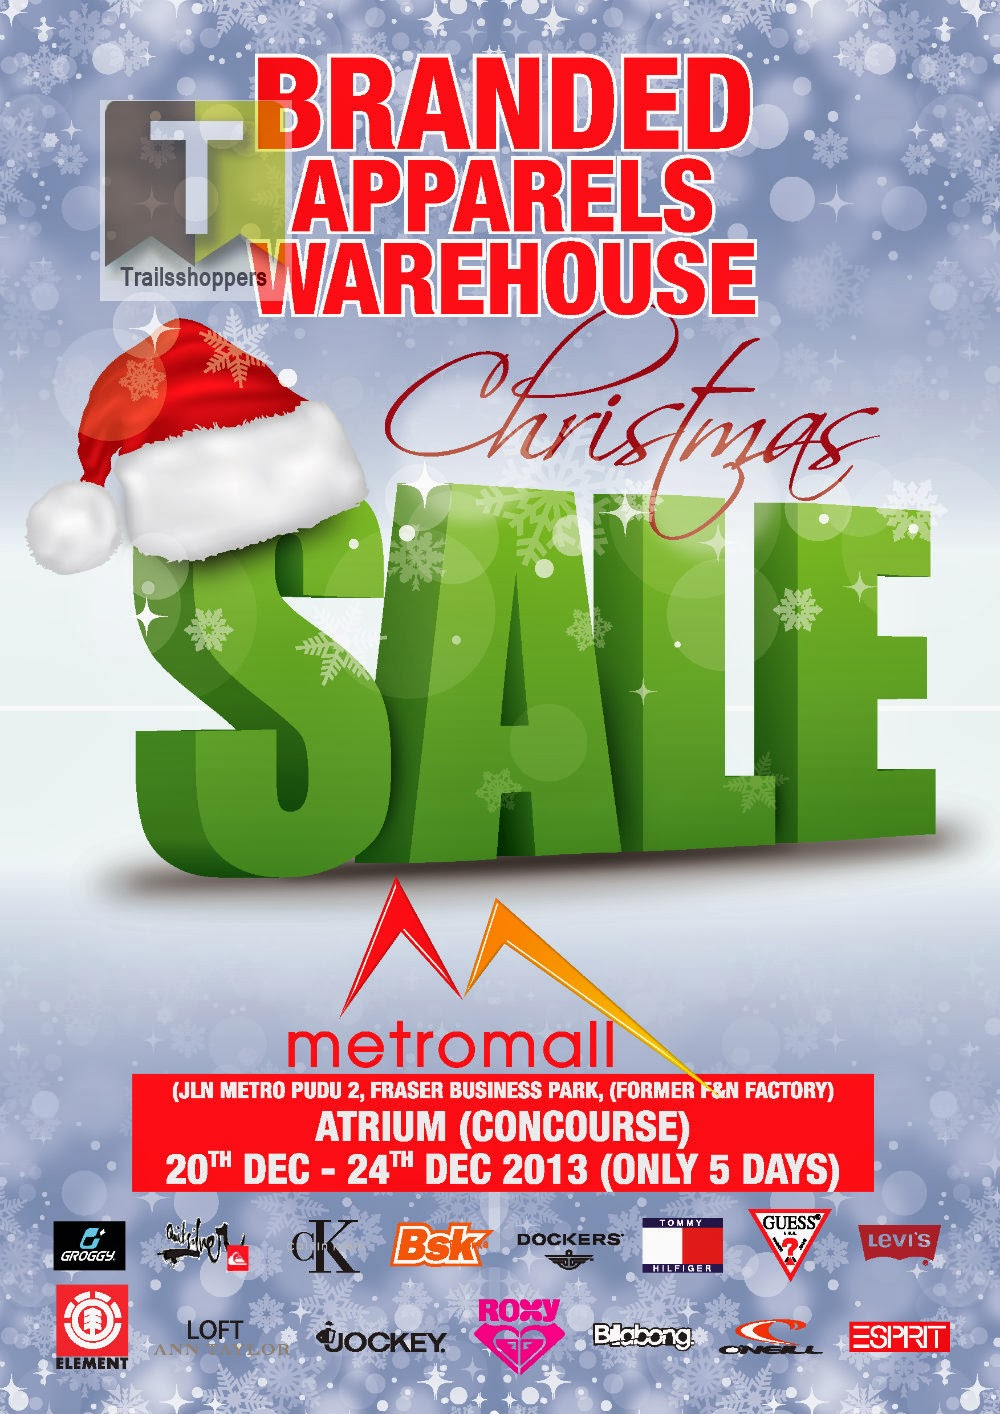 Branded Apparels Warehouse Christmas Sale